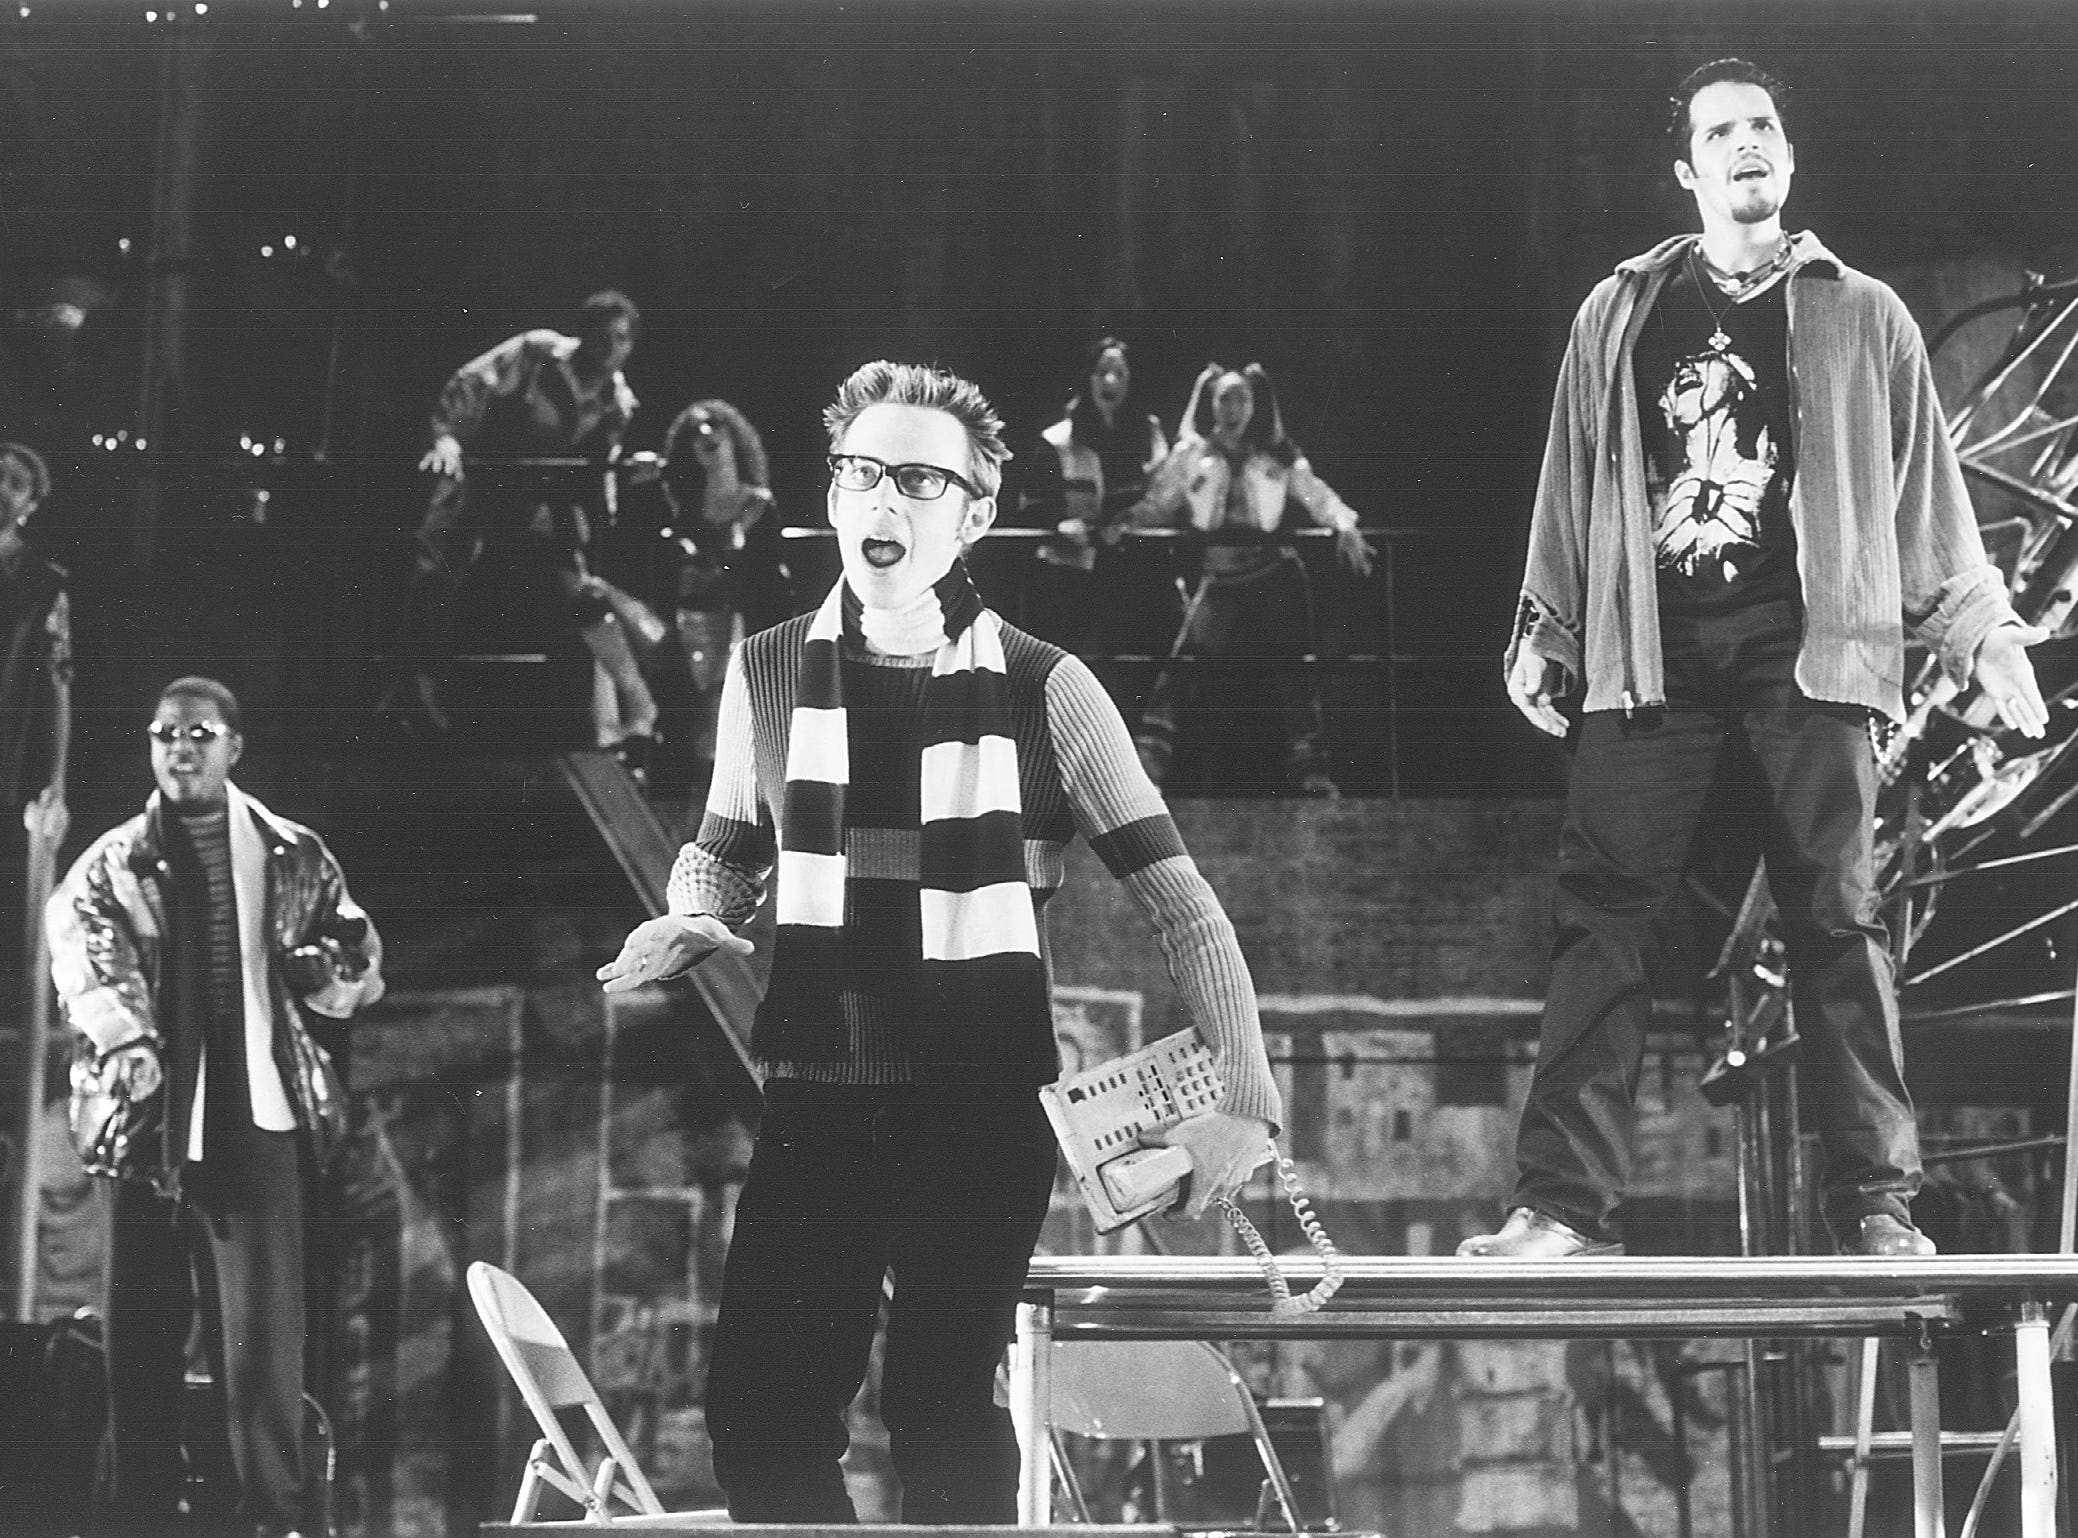 GUIDE 07P FOR 3/07/99 SUNDAY CUE SECTION - THE COMPANY IN A SCENE FROM RENT, THE PULITZER PRIZE AND TONY AWARD-WIMMING MUSICAL WRITTEN BY JONATHAN LARSON AND DIRECTED BY MICHAEL GREIF - PHOTO BY JOAN MARCUS - PERFROMING ARTS CENTER, MILWAUKEE, WI